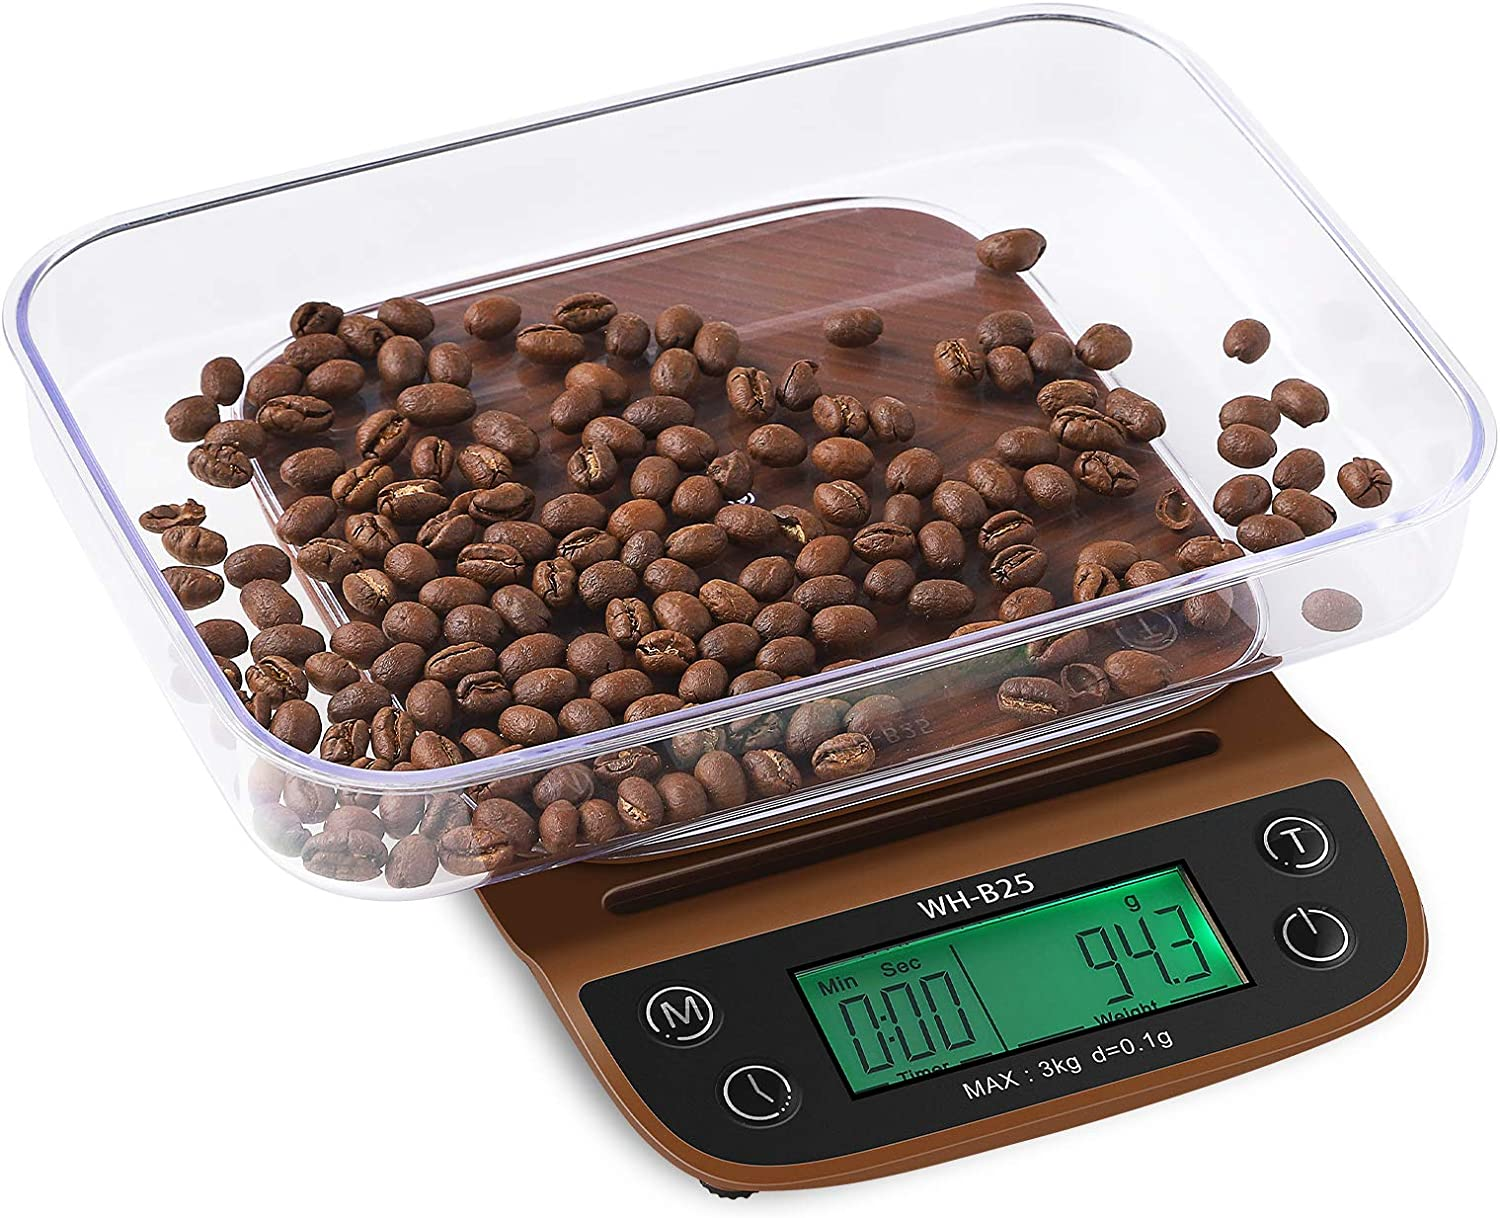 Coffee Scale with Timer, ONEISALL Kitchen Scale with Tray and Heat Resistance Silicone Pad, Multifunction Food Scale postage scale for Pour Over and Drip Coffee, Espresso, Food, Cook, Baking